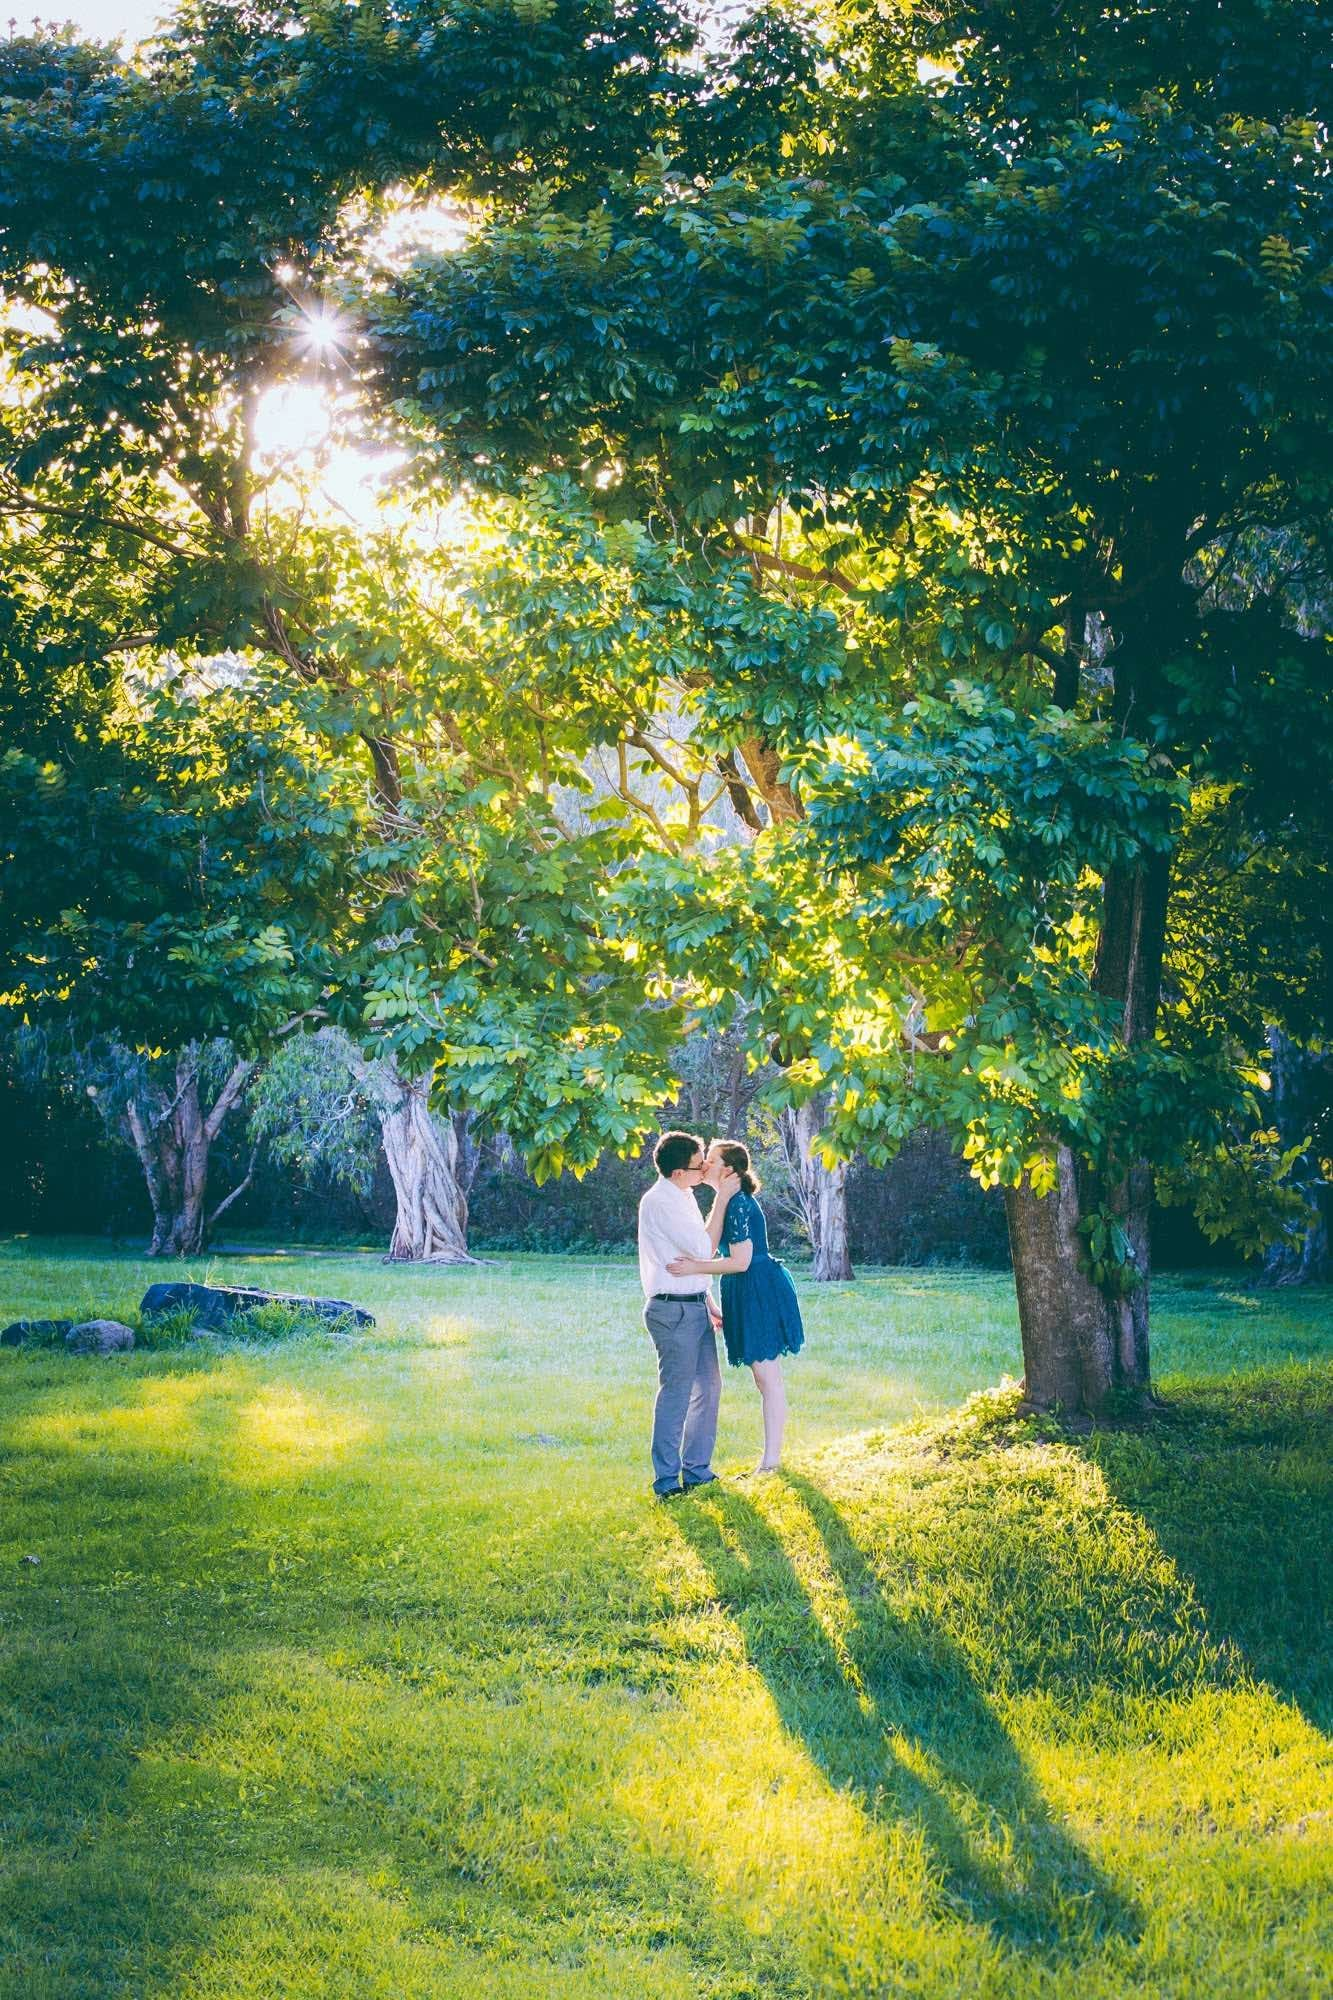 Norman Park Coorparoo Engagement Photographer Brisbane Anna Osetroff